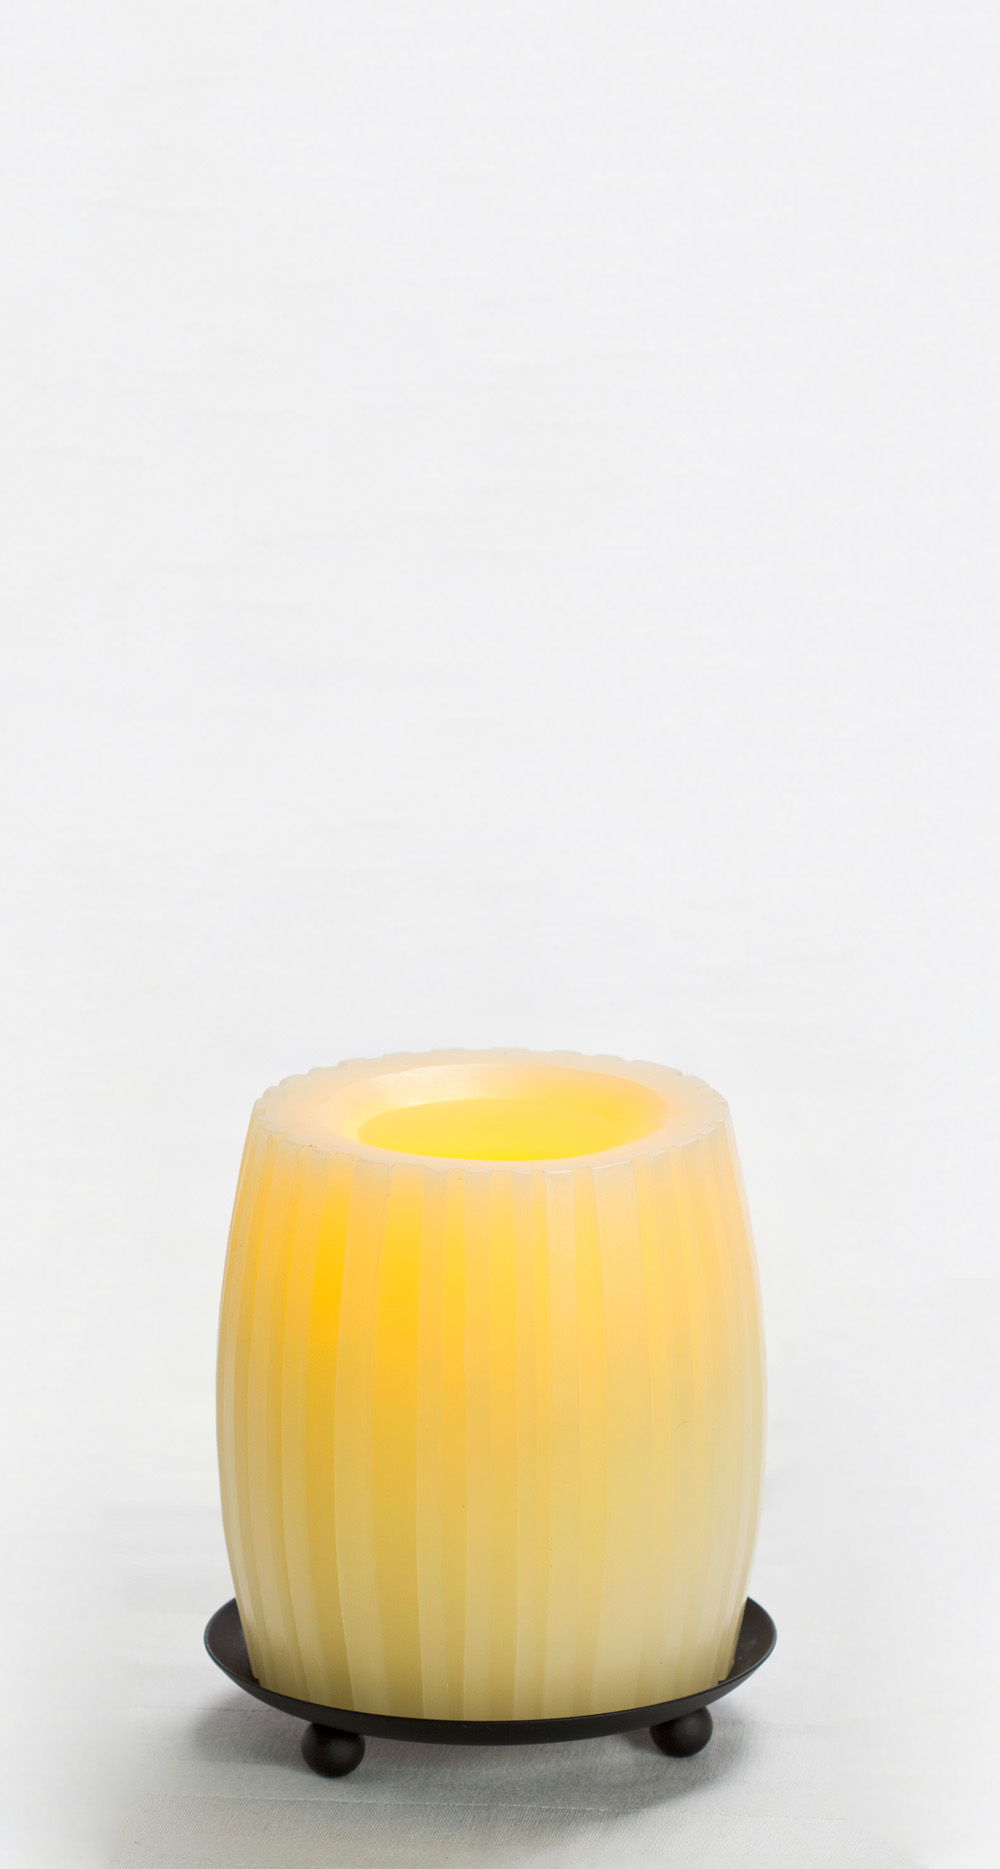 4 Inch Flameless Swirled Hurricane Candle with Timer - Cream with Vanilla Scent